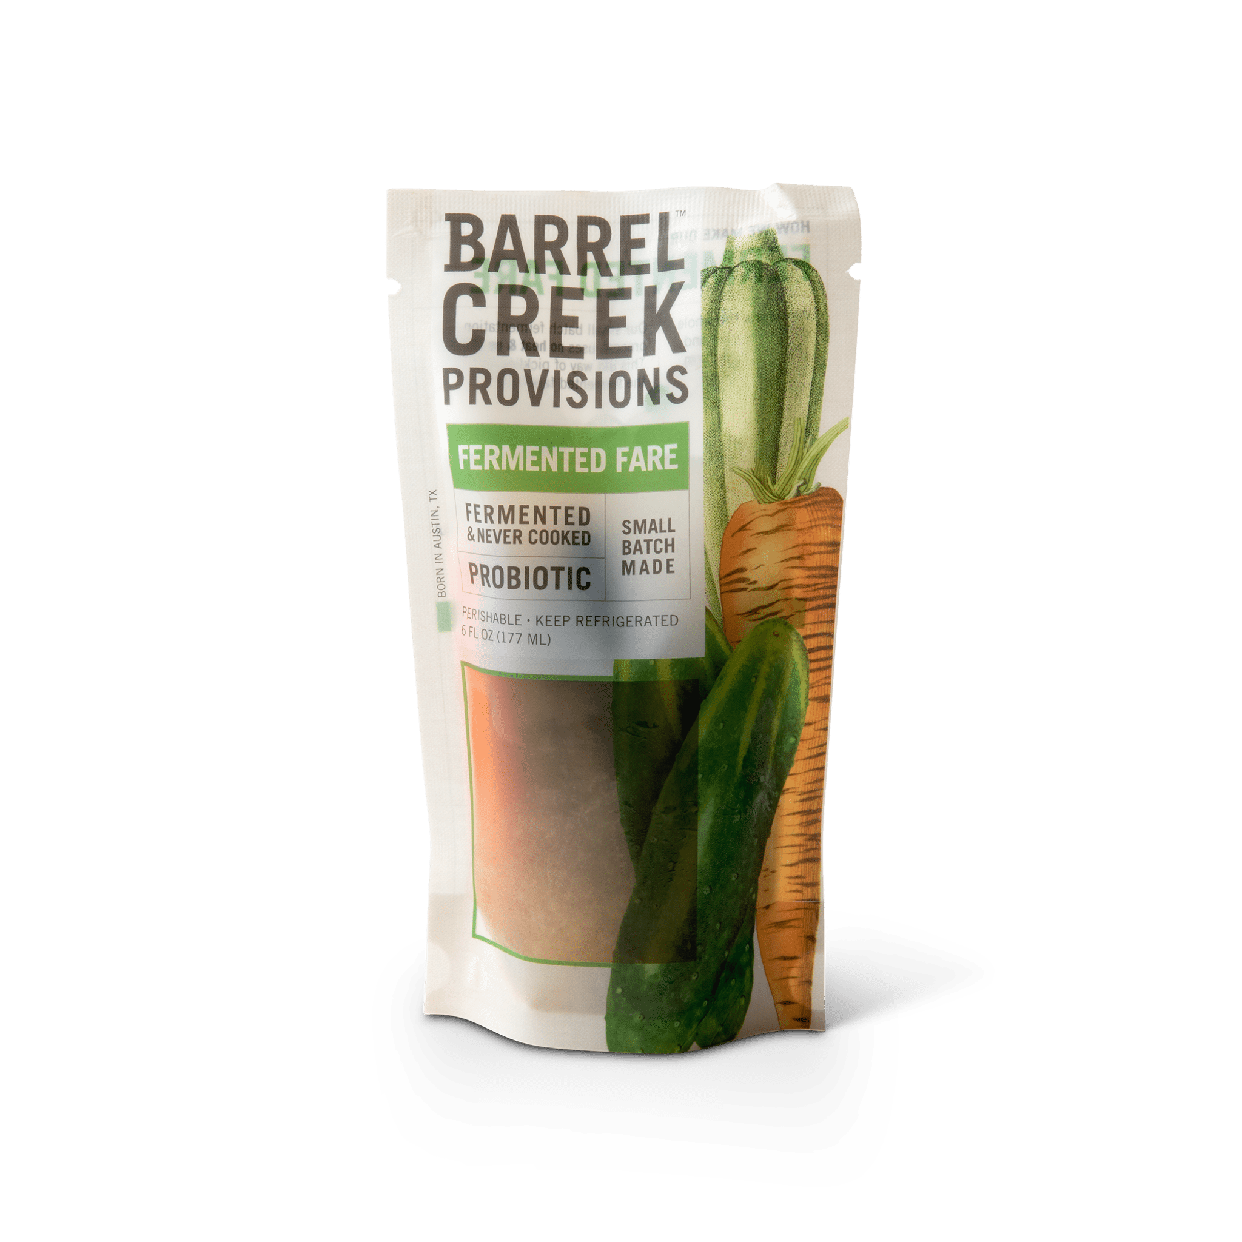 barrel creek provisions - fermented fare